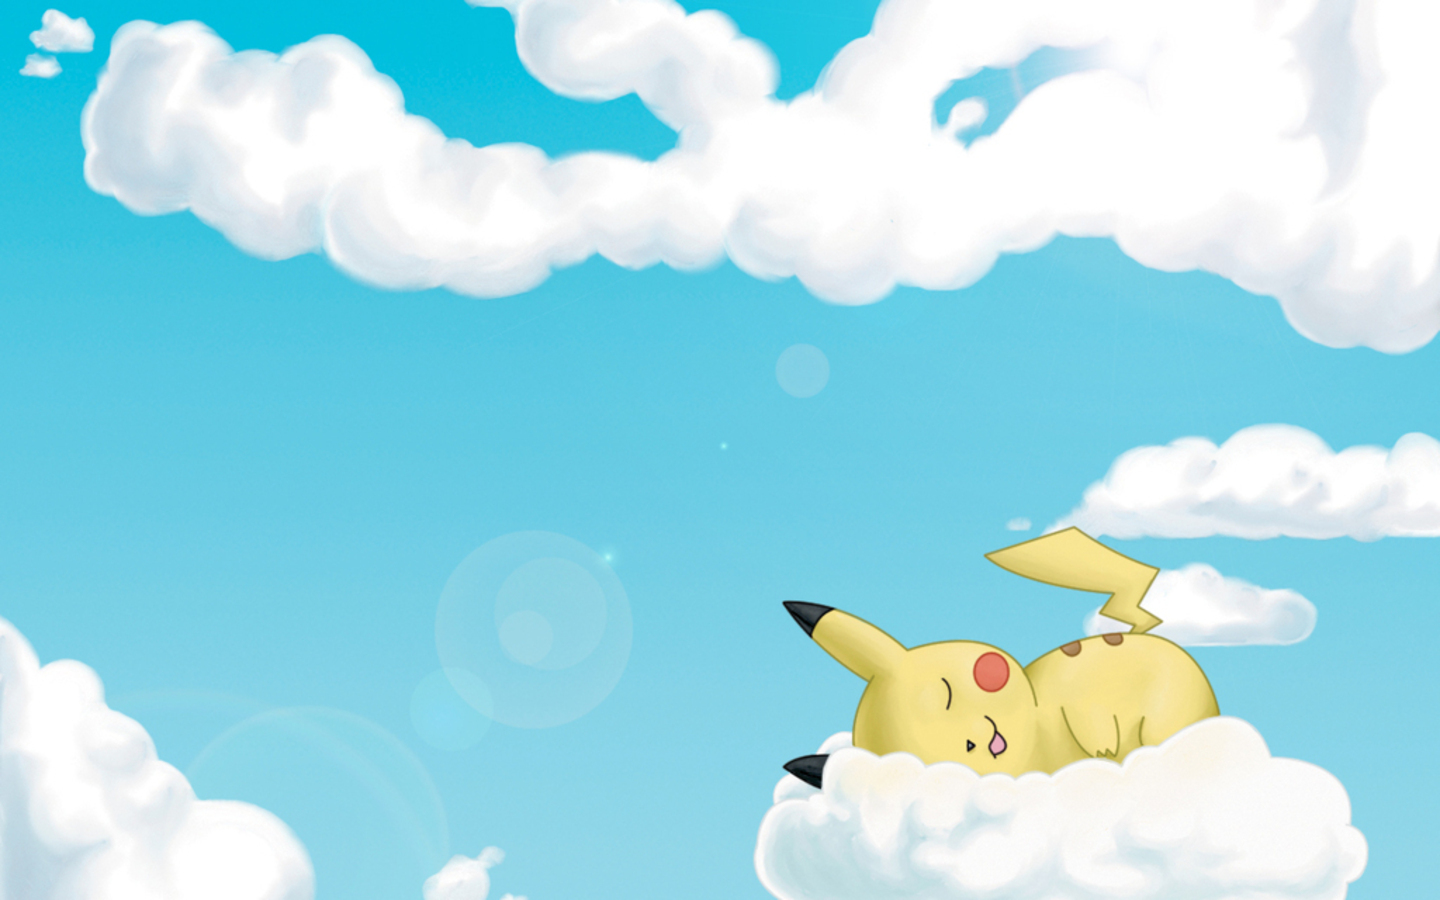 Pika sure ve seen HD Wallpaper